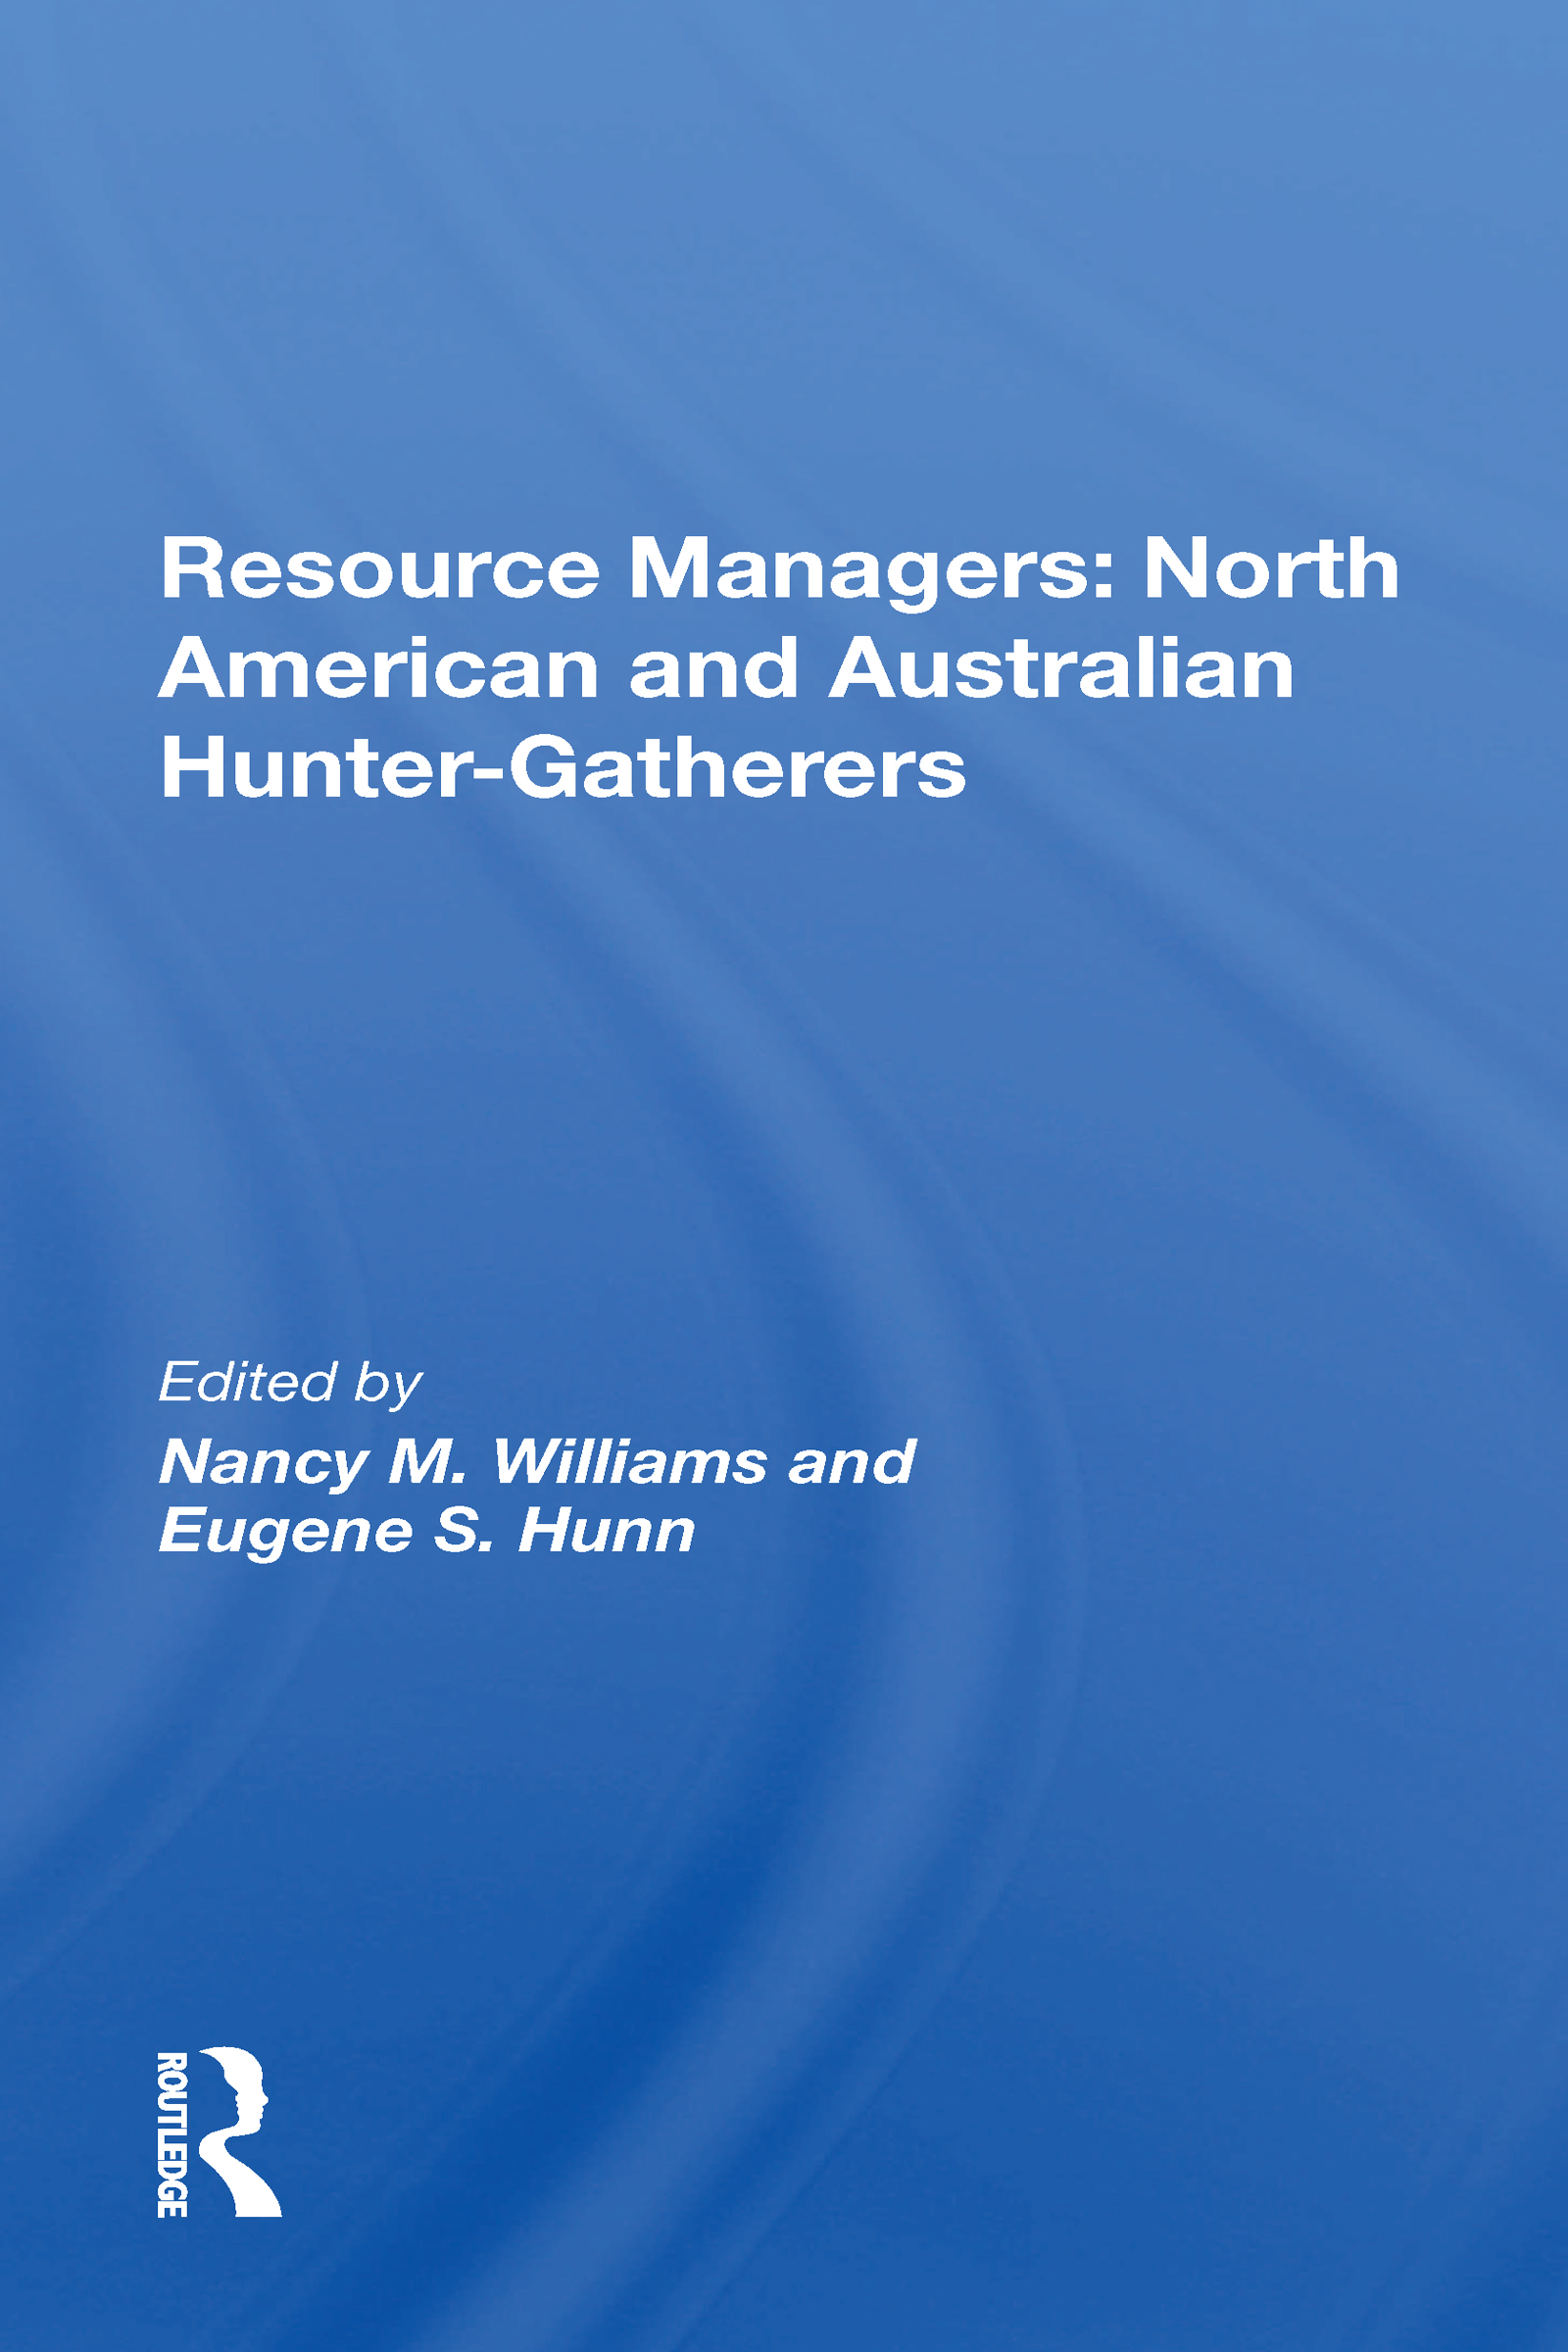 Resource Managers: North American And Australian Hunter-Gatherers